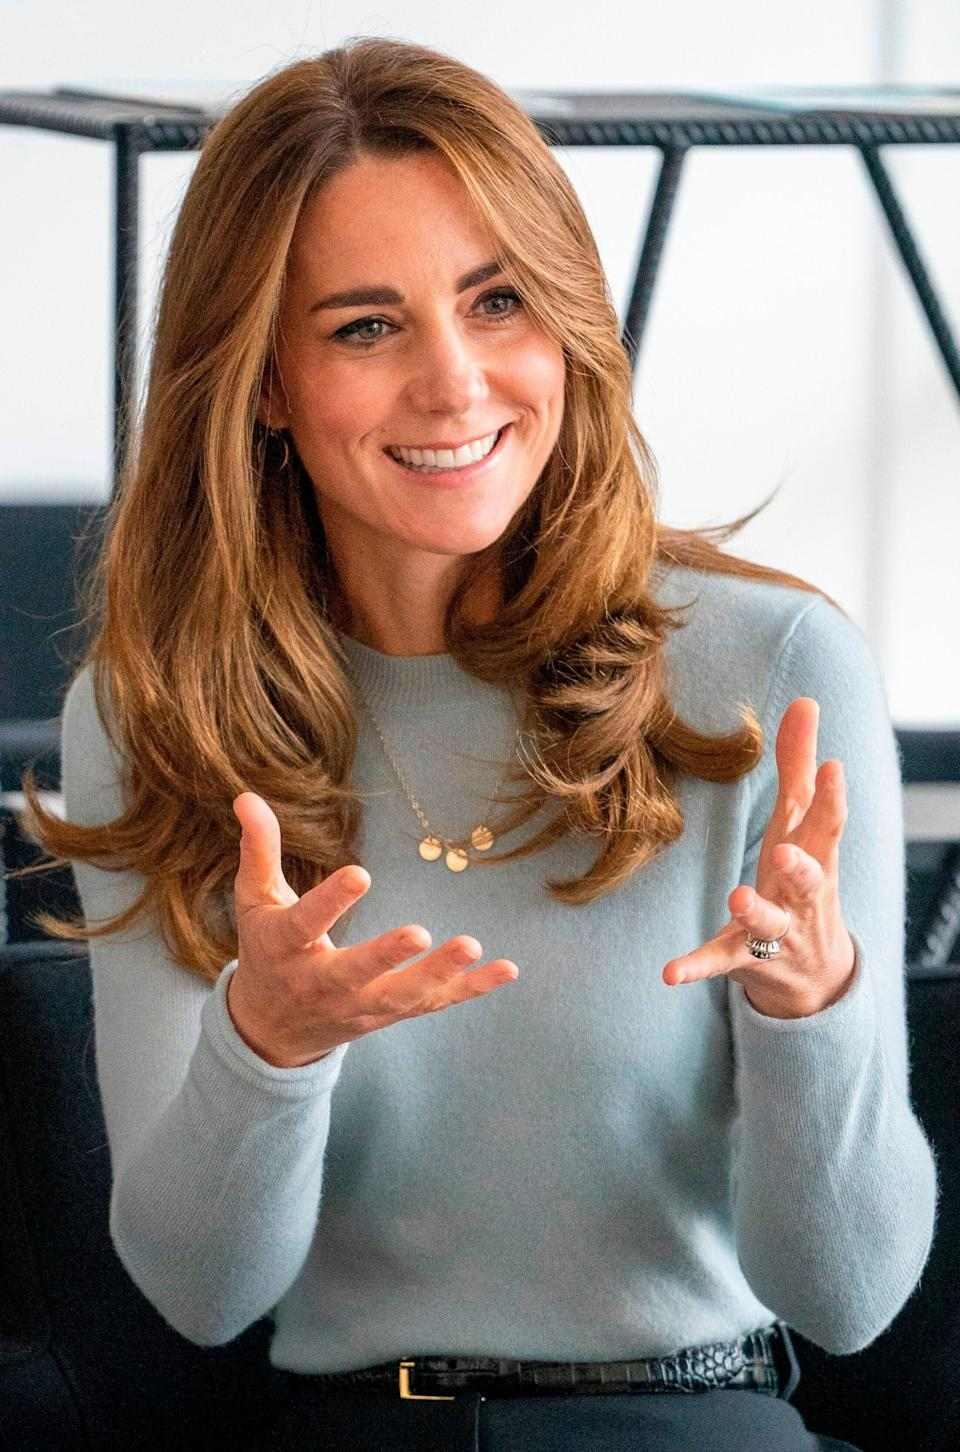 The Duchess of Cambridge during a visit to the University of Derby in Derby, England, on Oct. 6. (Photo: ARTHUR EDWARDS via Getty Images)